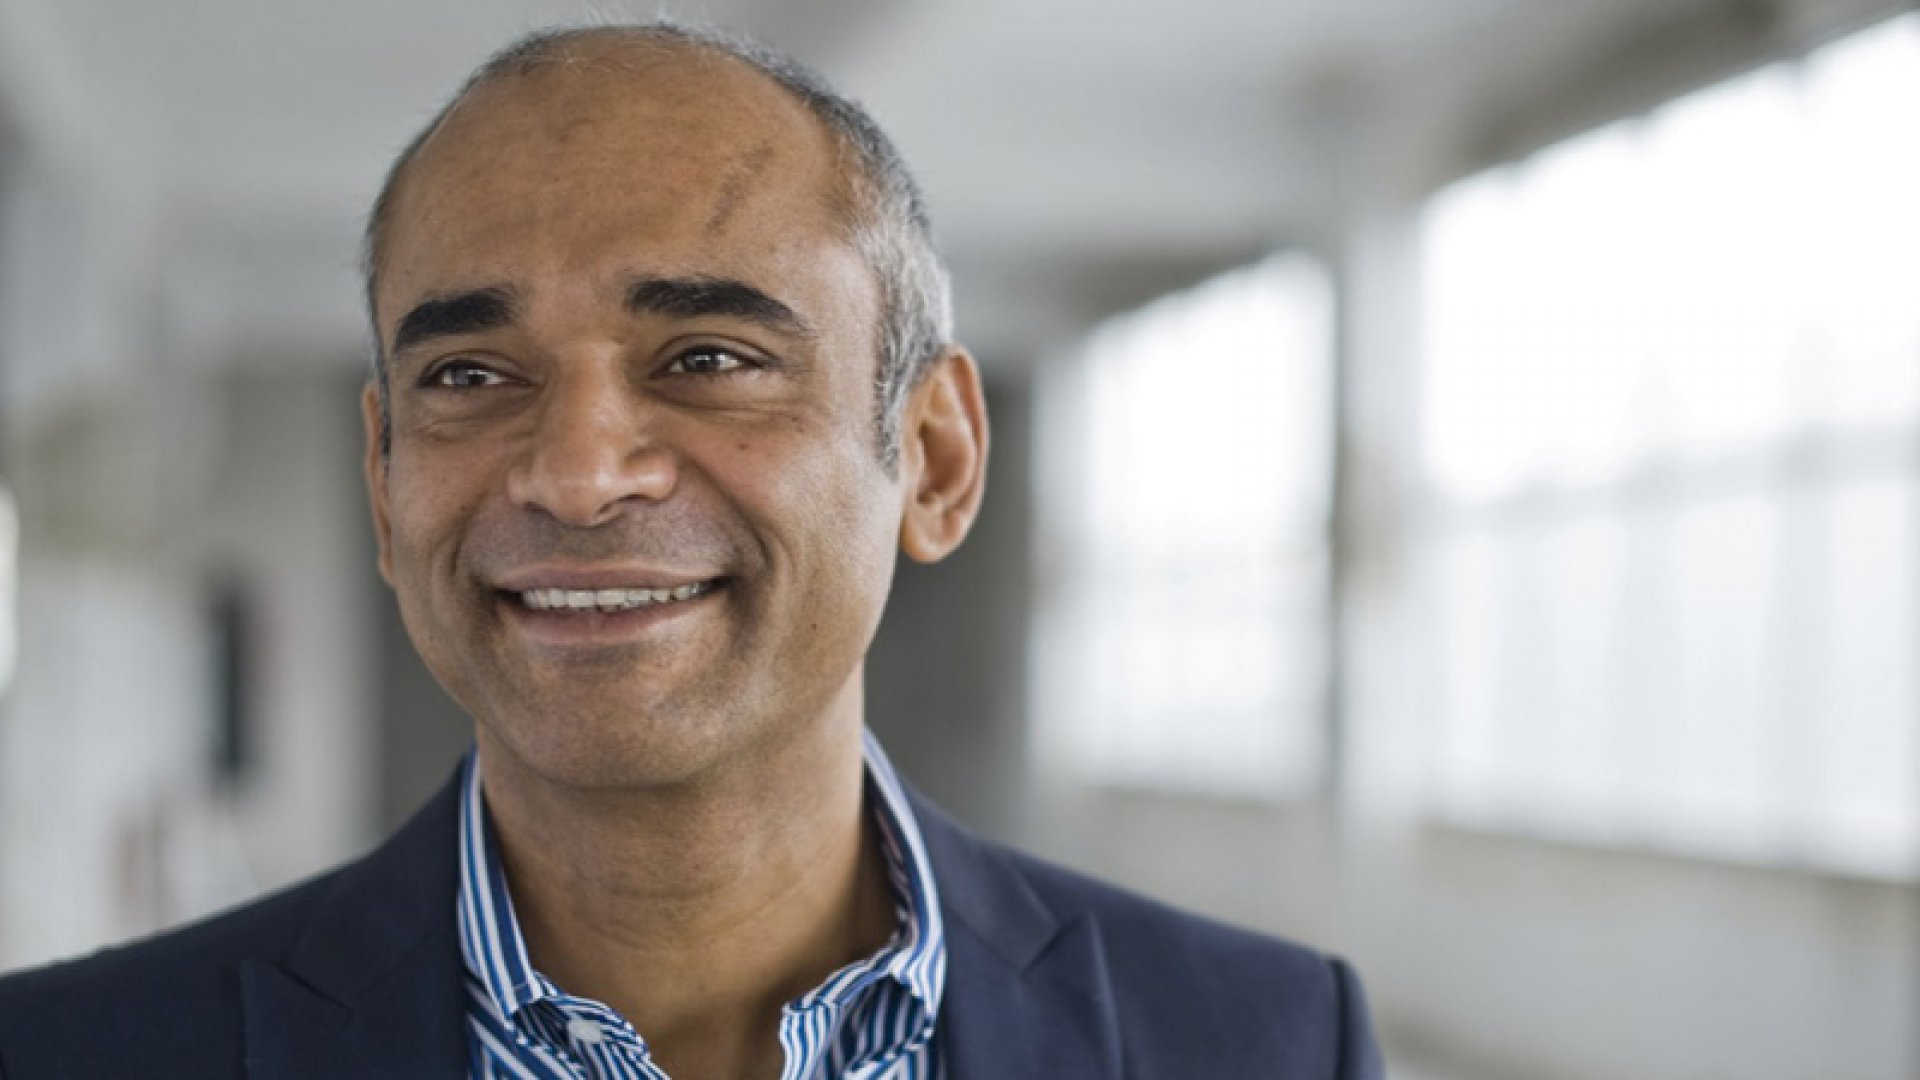 Aereo Founder Calls Supreme Court Ruling 'Troubling,' 'Chilling'